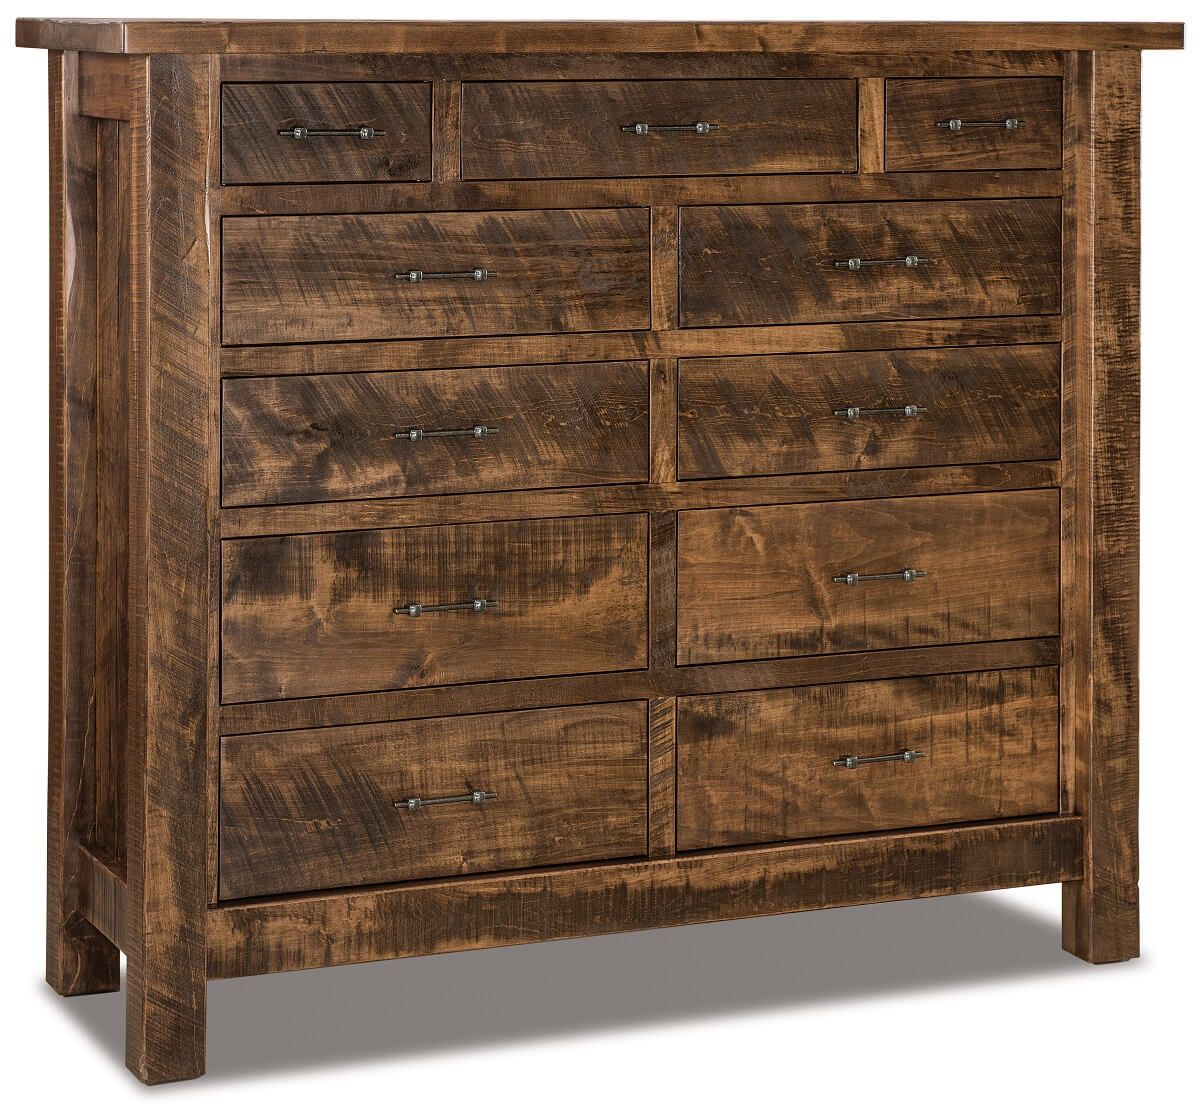 Brinkley Grand Chest of Drawers